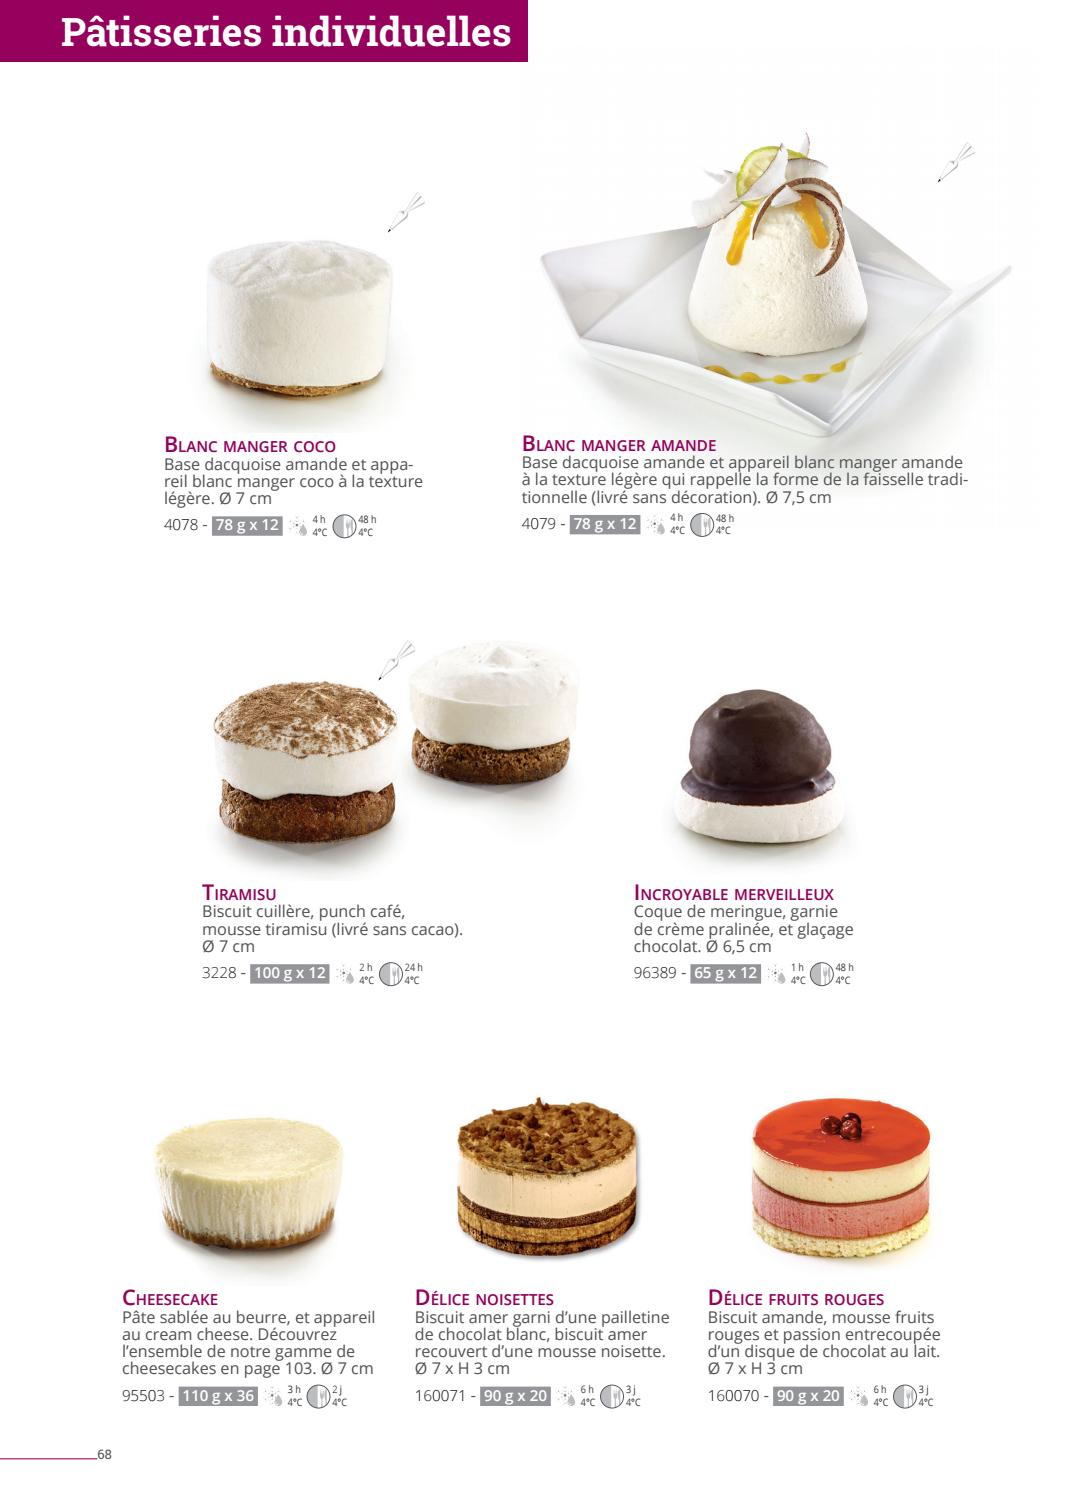 Catalogue 2018 France By La Compagnie Des Desserts Issuu